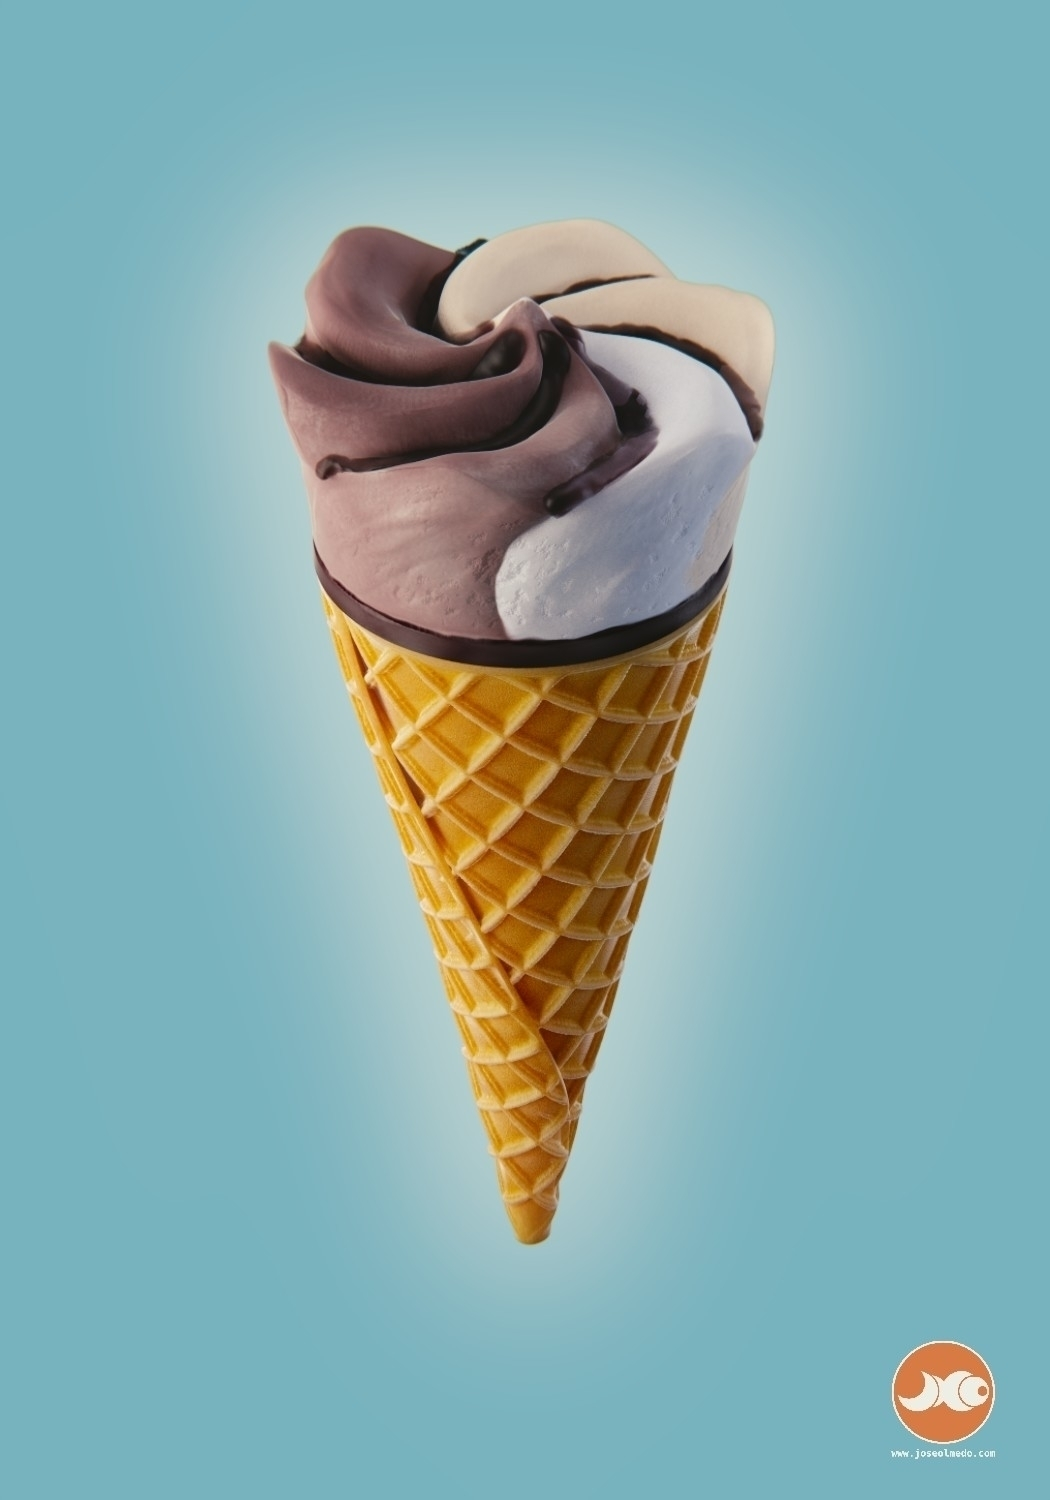 Ice cream cone - 2, icecream, foodillustration - joseolmedo | ello